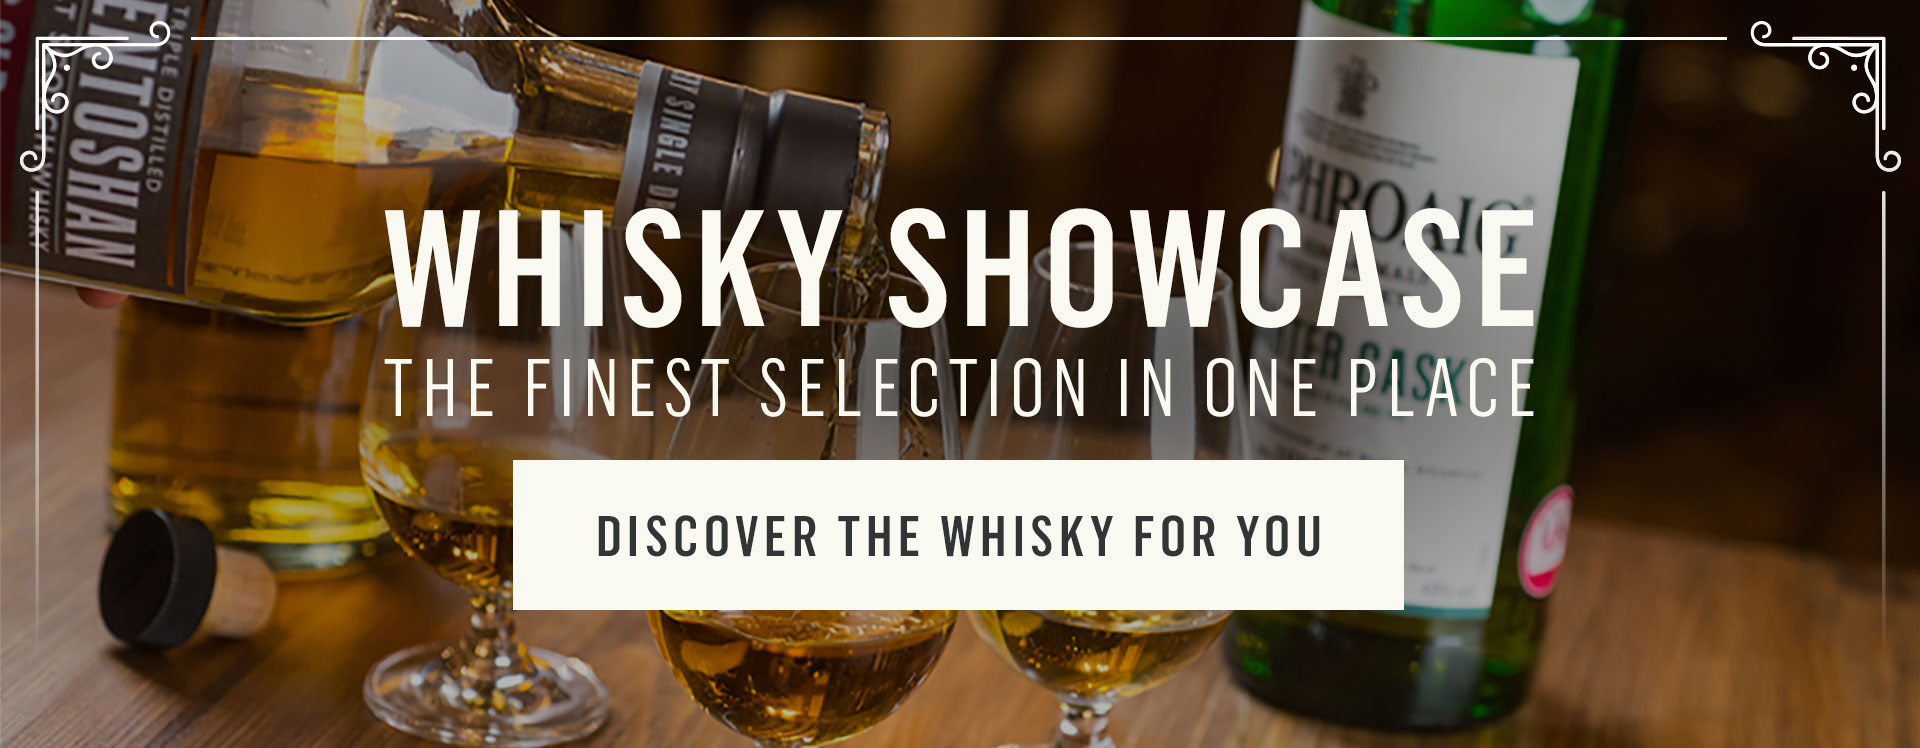 Whisky Showcase at The Railway Tavern in Richmond